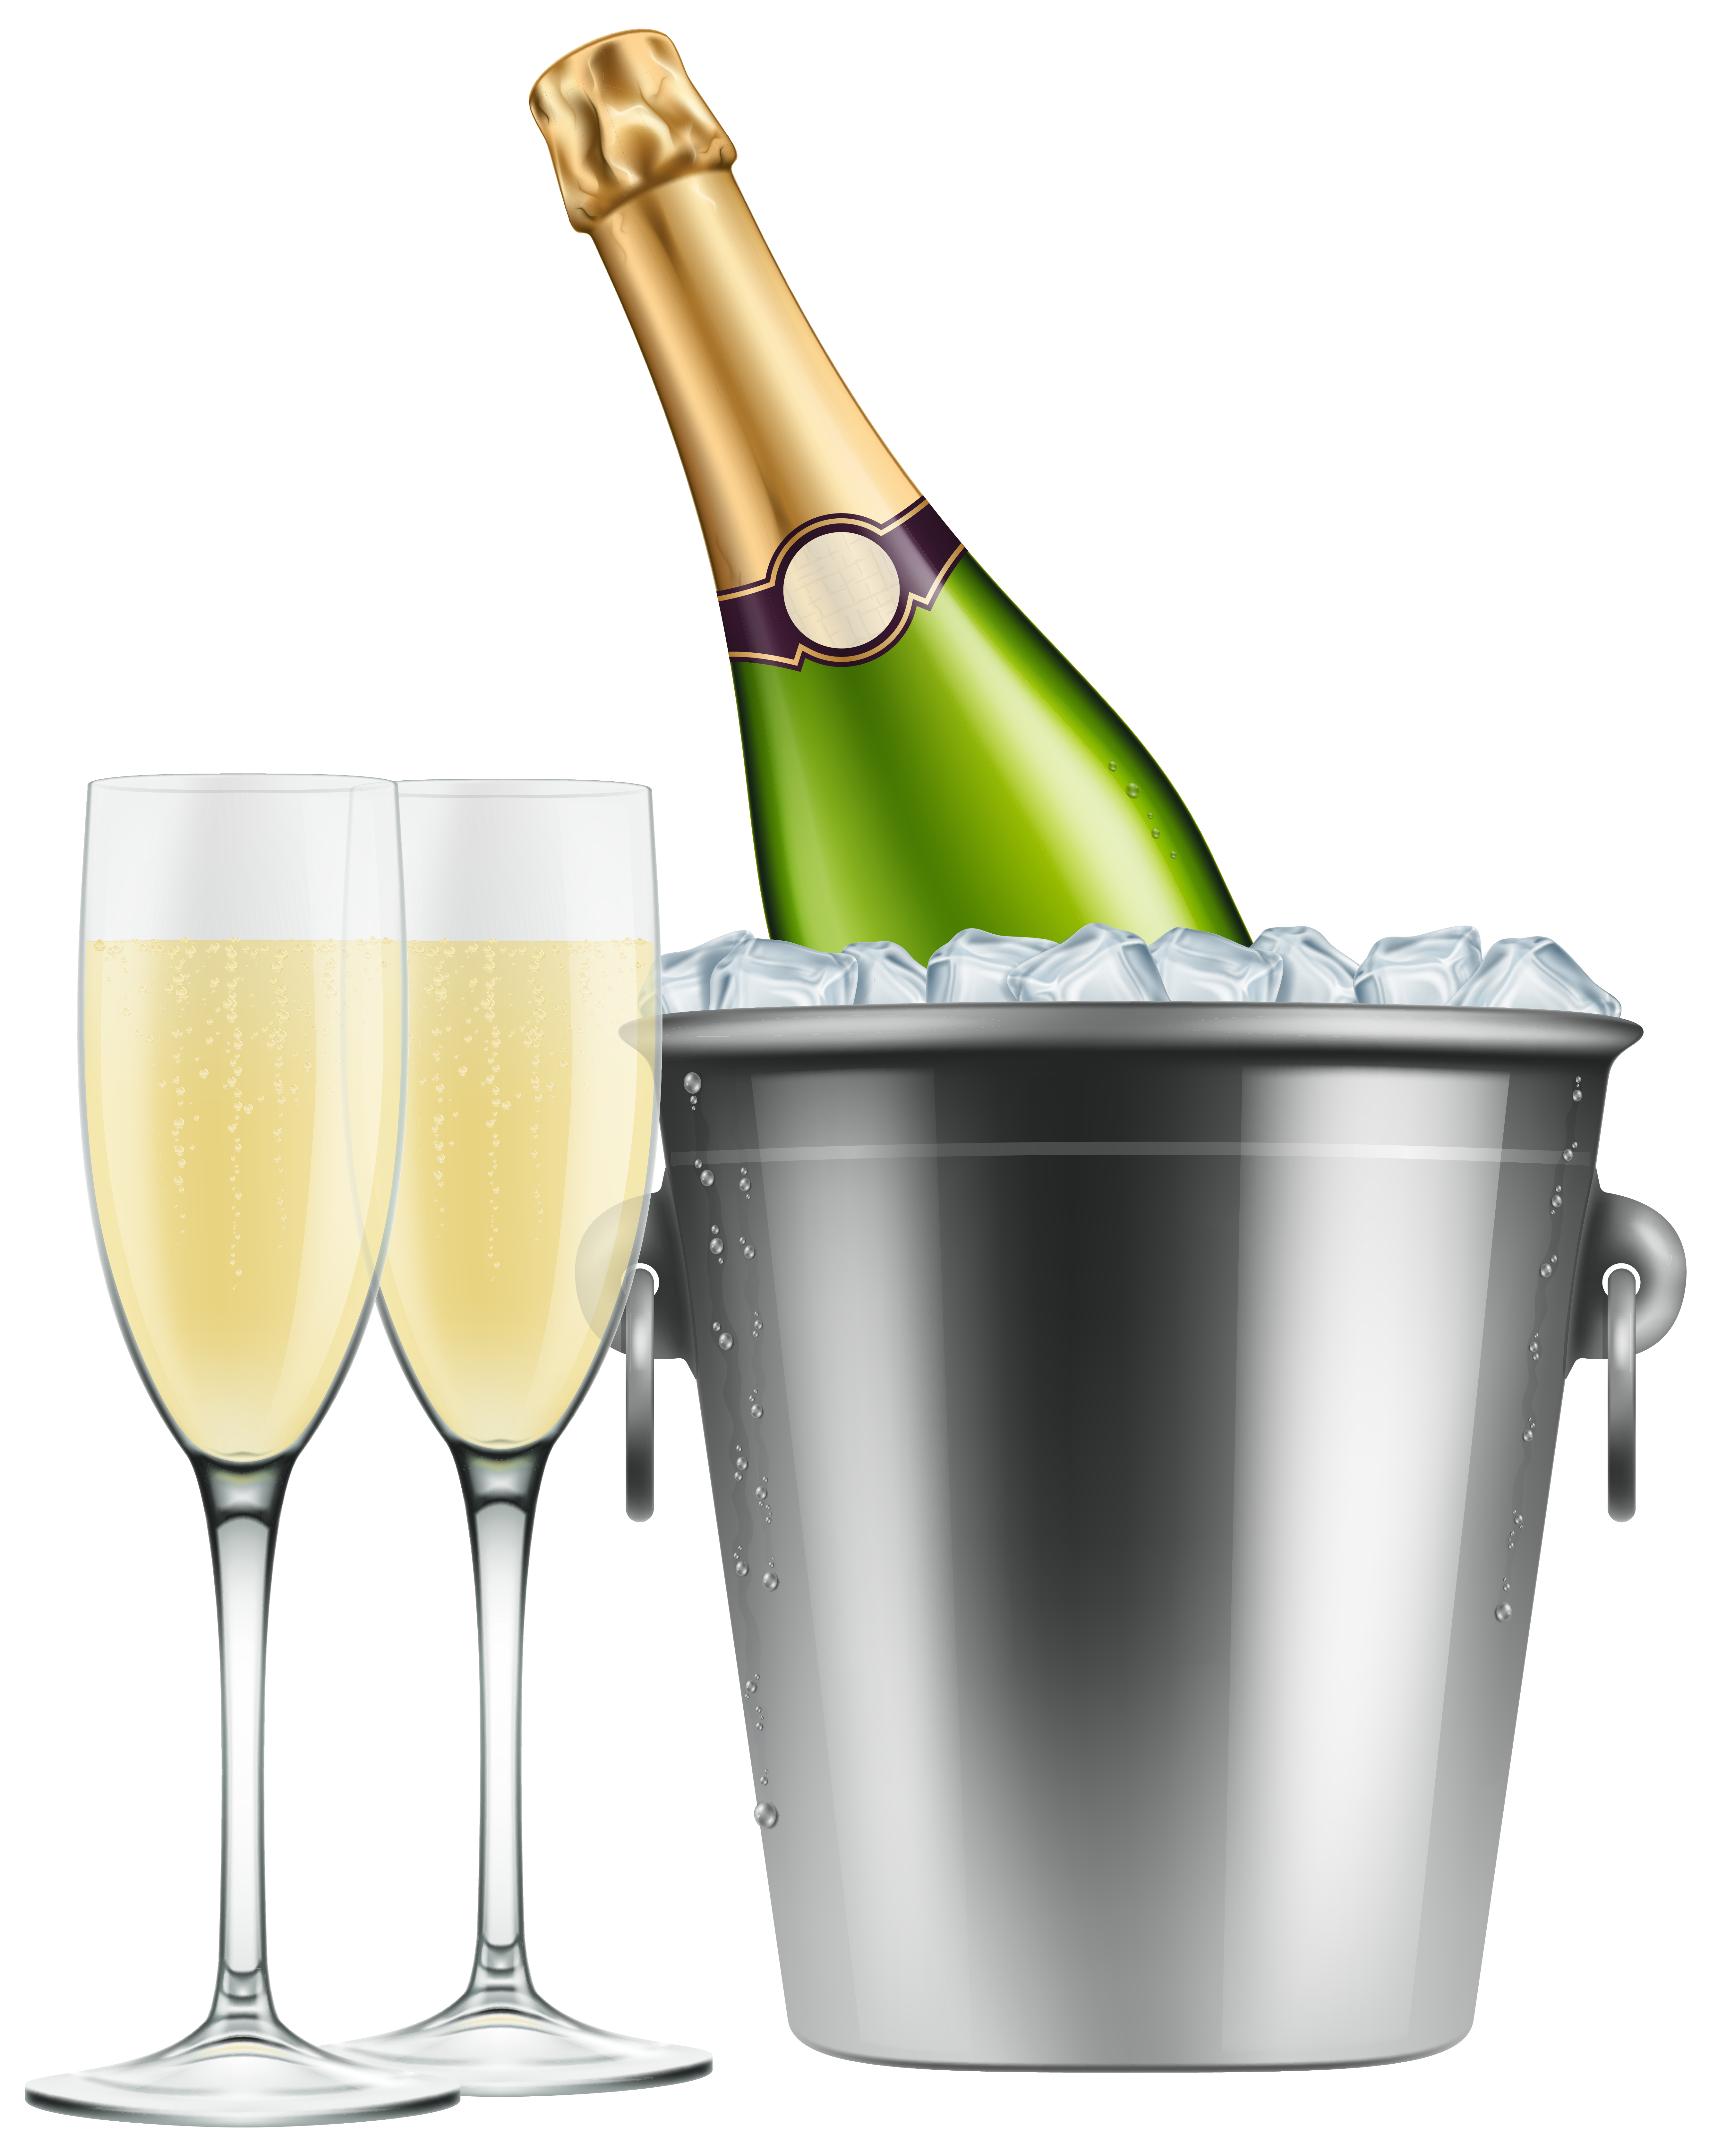 graphic In ice and glasses. Champagne clipart.